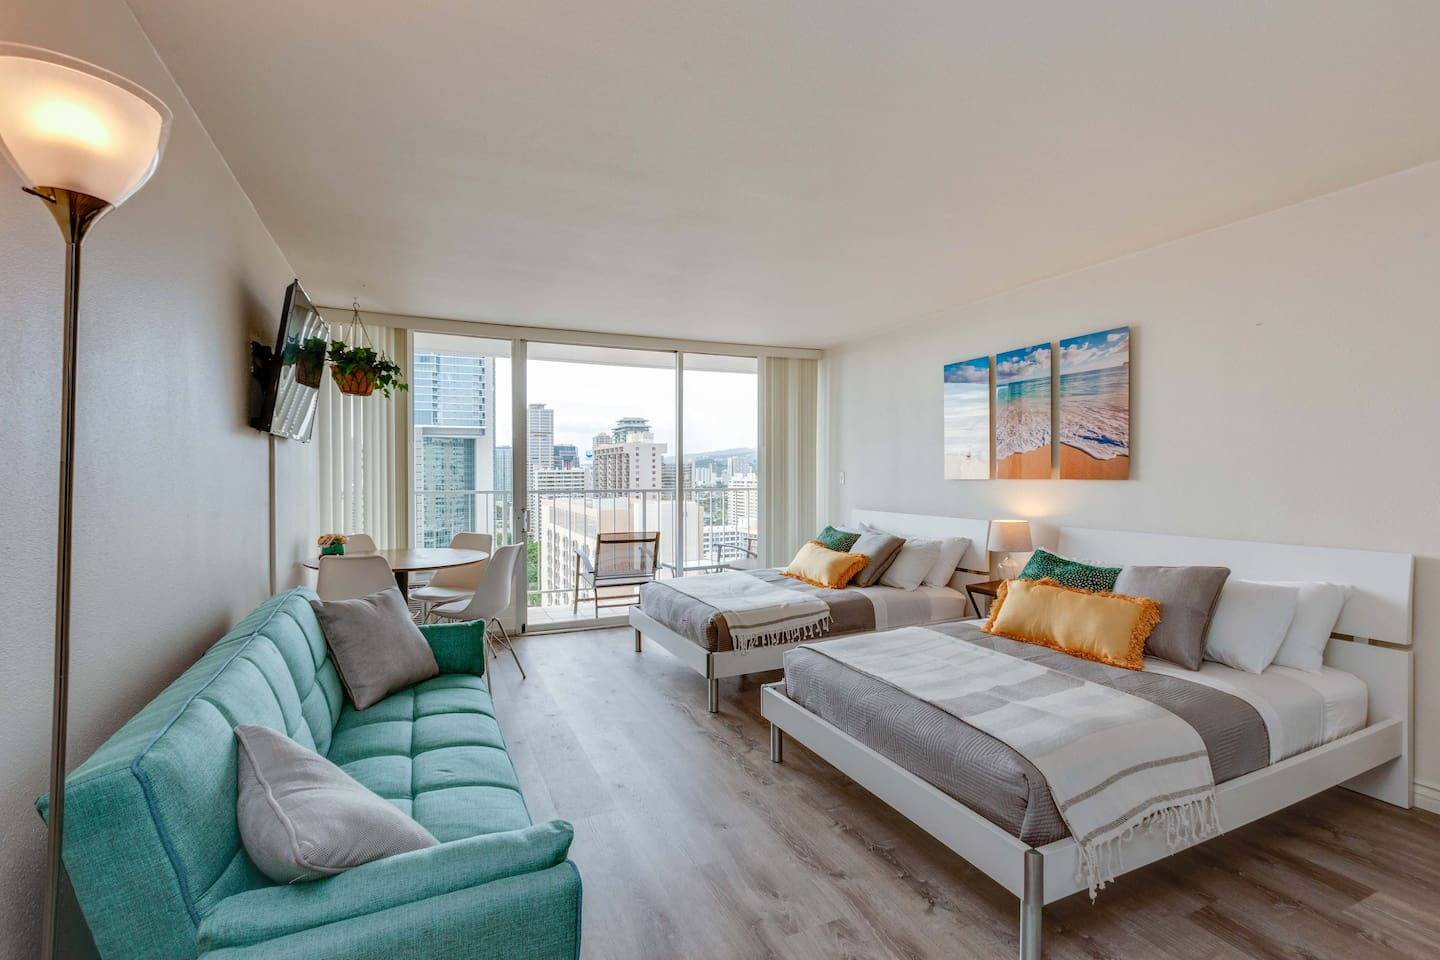 Spectacular studio(392 Sqft Liv. & 56 Sqft Lanai) located in the heart of Waikiki. Renovated clean unit with a window AC, 2 full size beds & 1 full size sofa bed to accommodate up to 6 guests! Free assigned parking is a big plus in Waikiki!